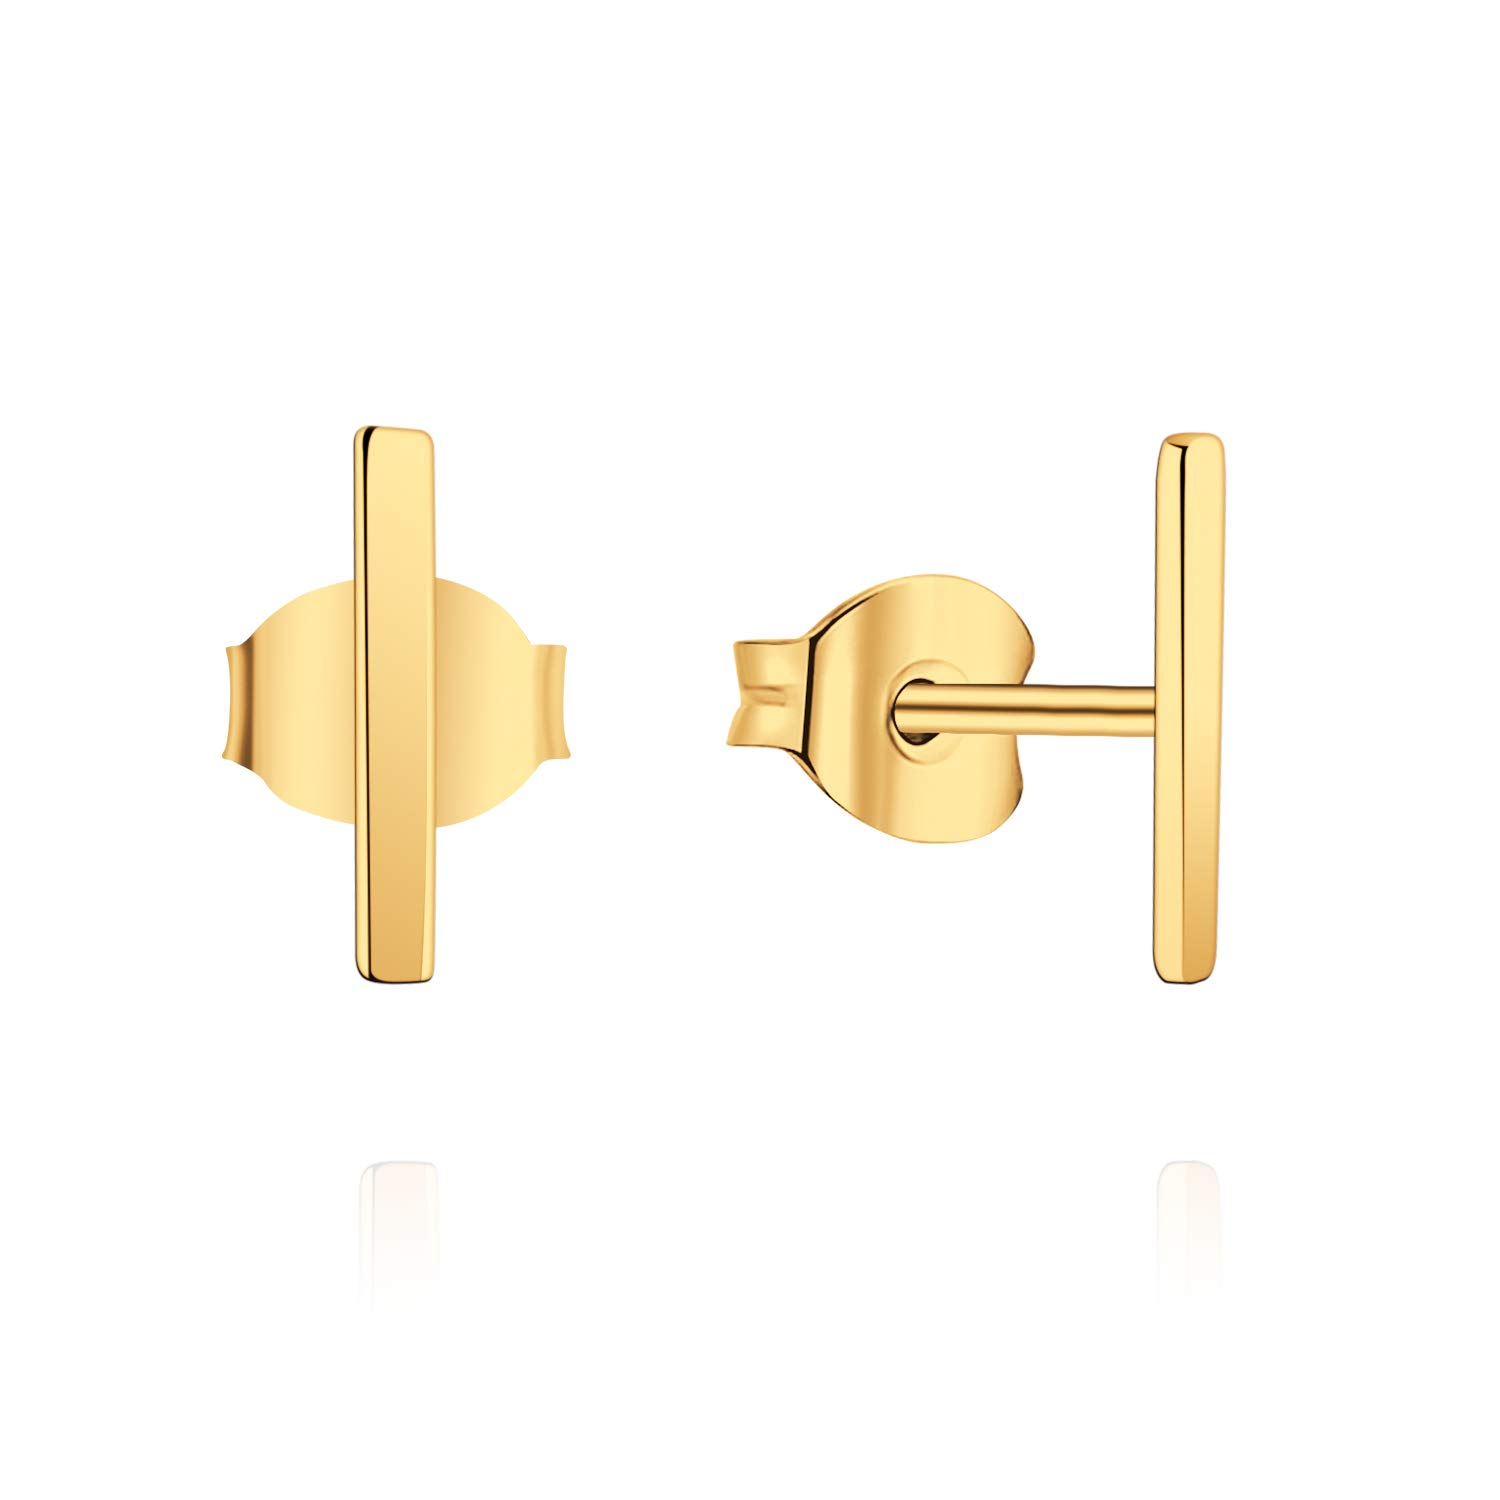 YL Women's Bar Earrings Sterling Silver Tiny Stud Earrings White/Rose/Yellow Gold Jewelry YL Jewelry NE9830DB2